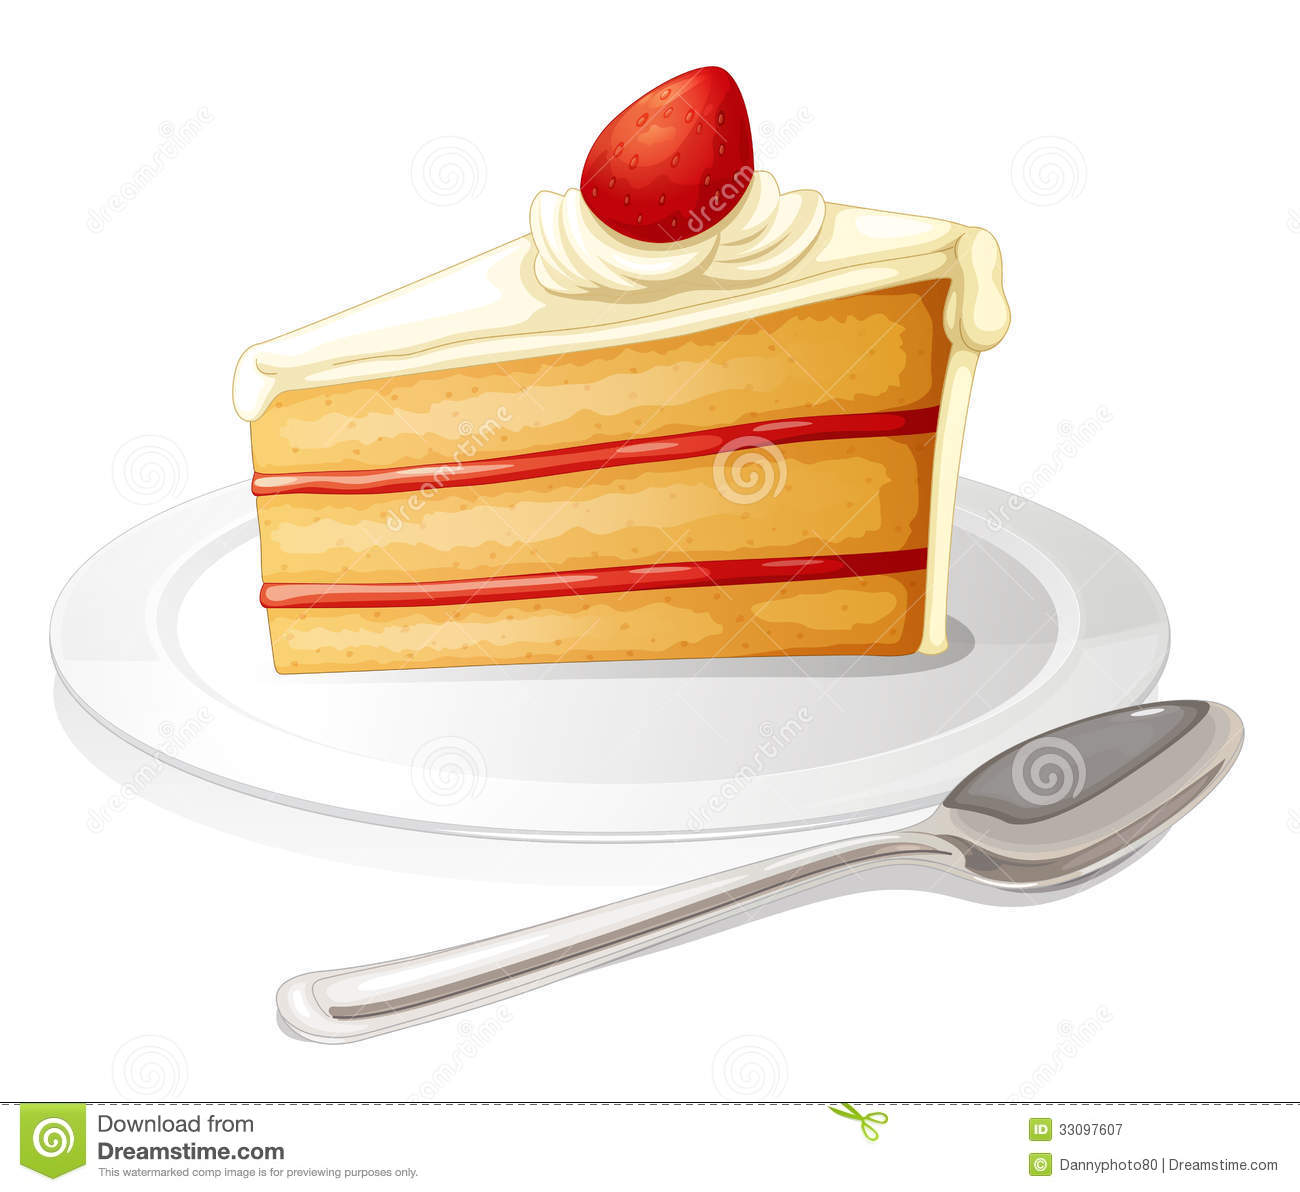 Clipart Slice Of Cake On A Plate : Rainbow Cake Clipart - Clipart Suggest